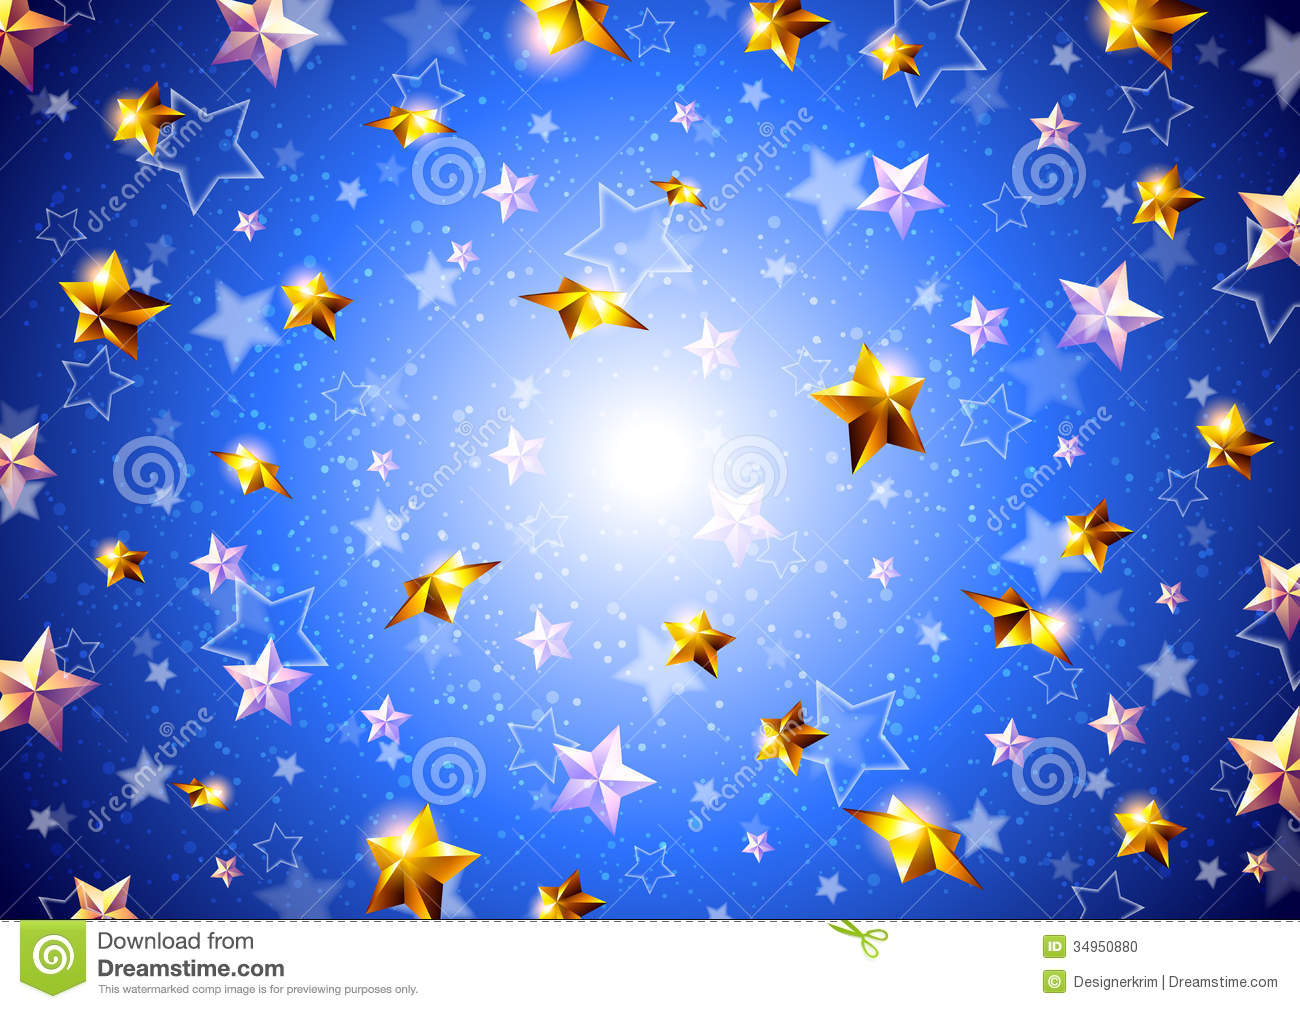 Golden stars on a blue background stock photo image 34950880